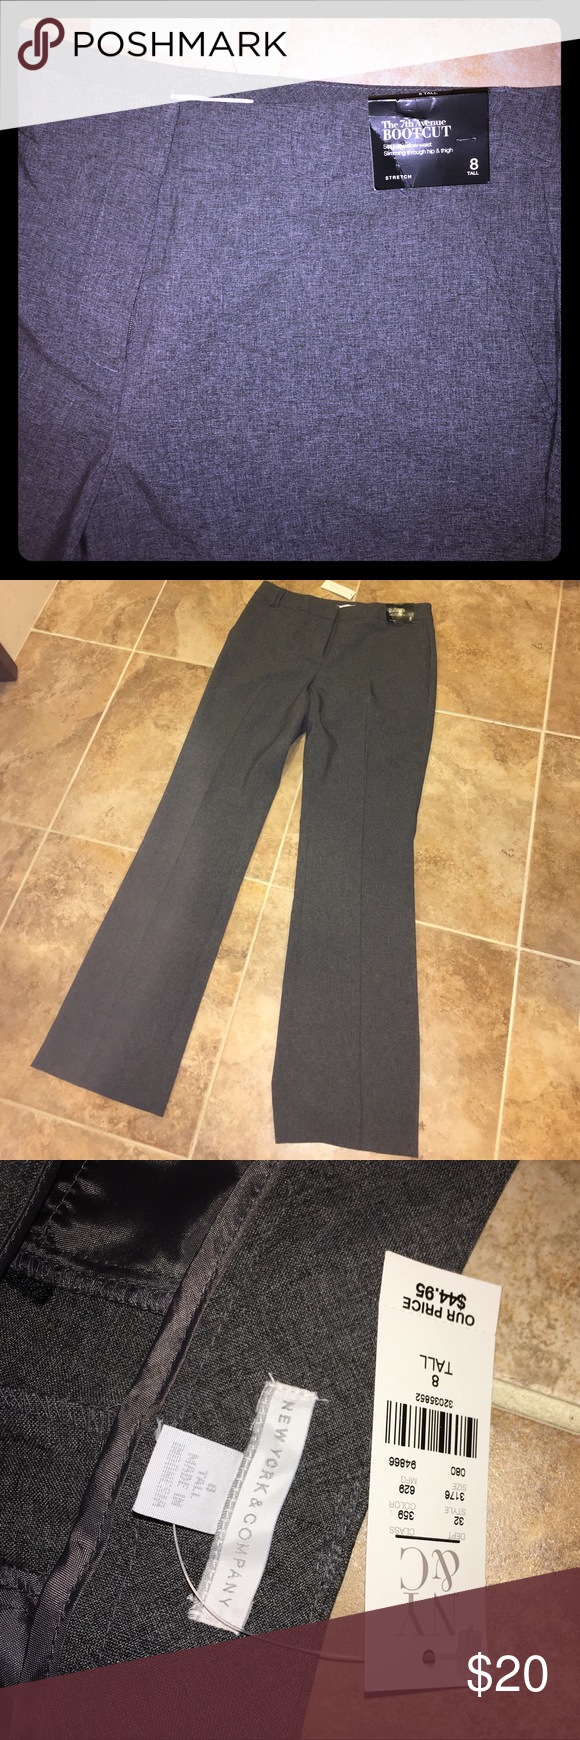 New York & Company bootcut slacks size 8 tall NWT. Absolute perfect condition. Perfect for work. New York & Company Pants Boot Cut & Flare